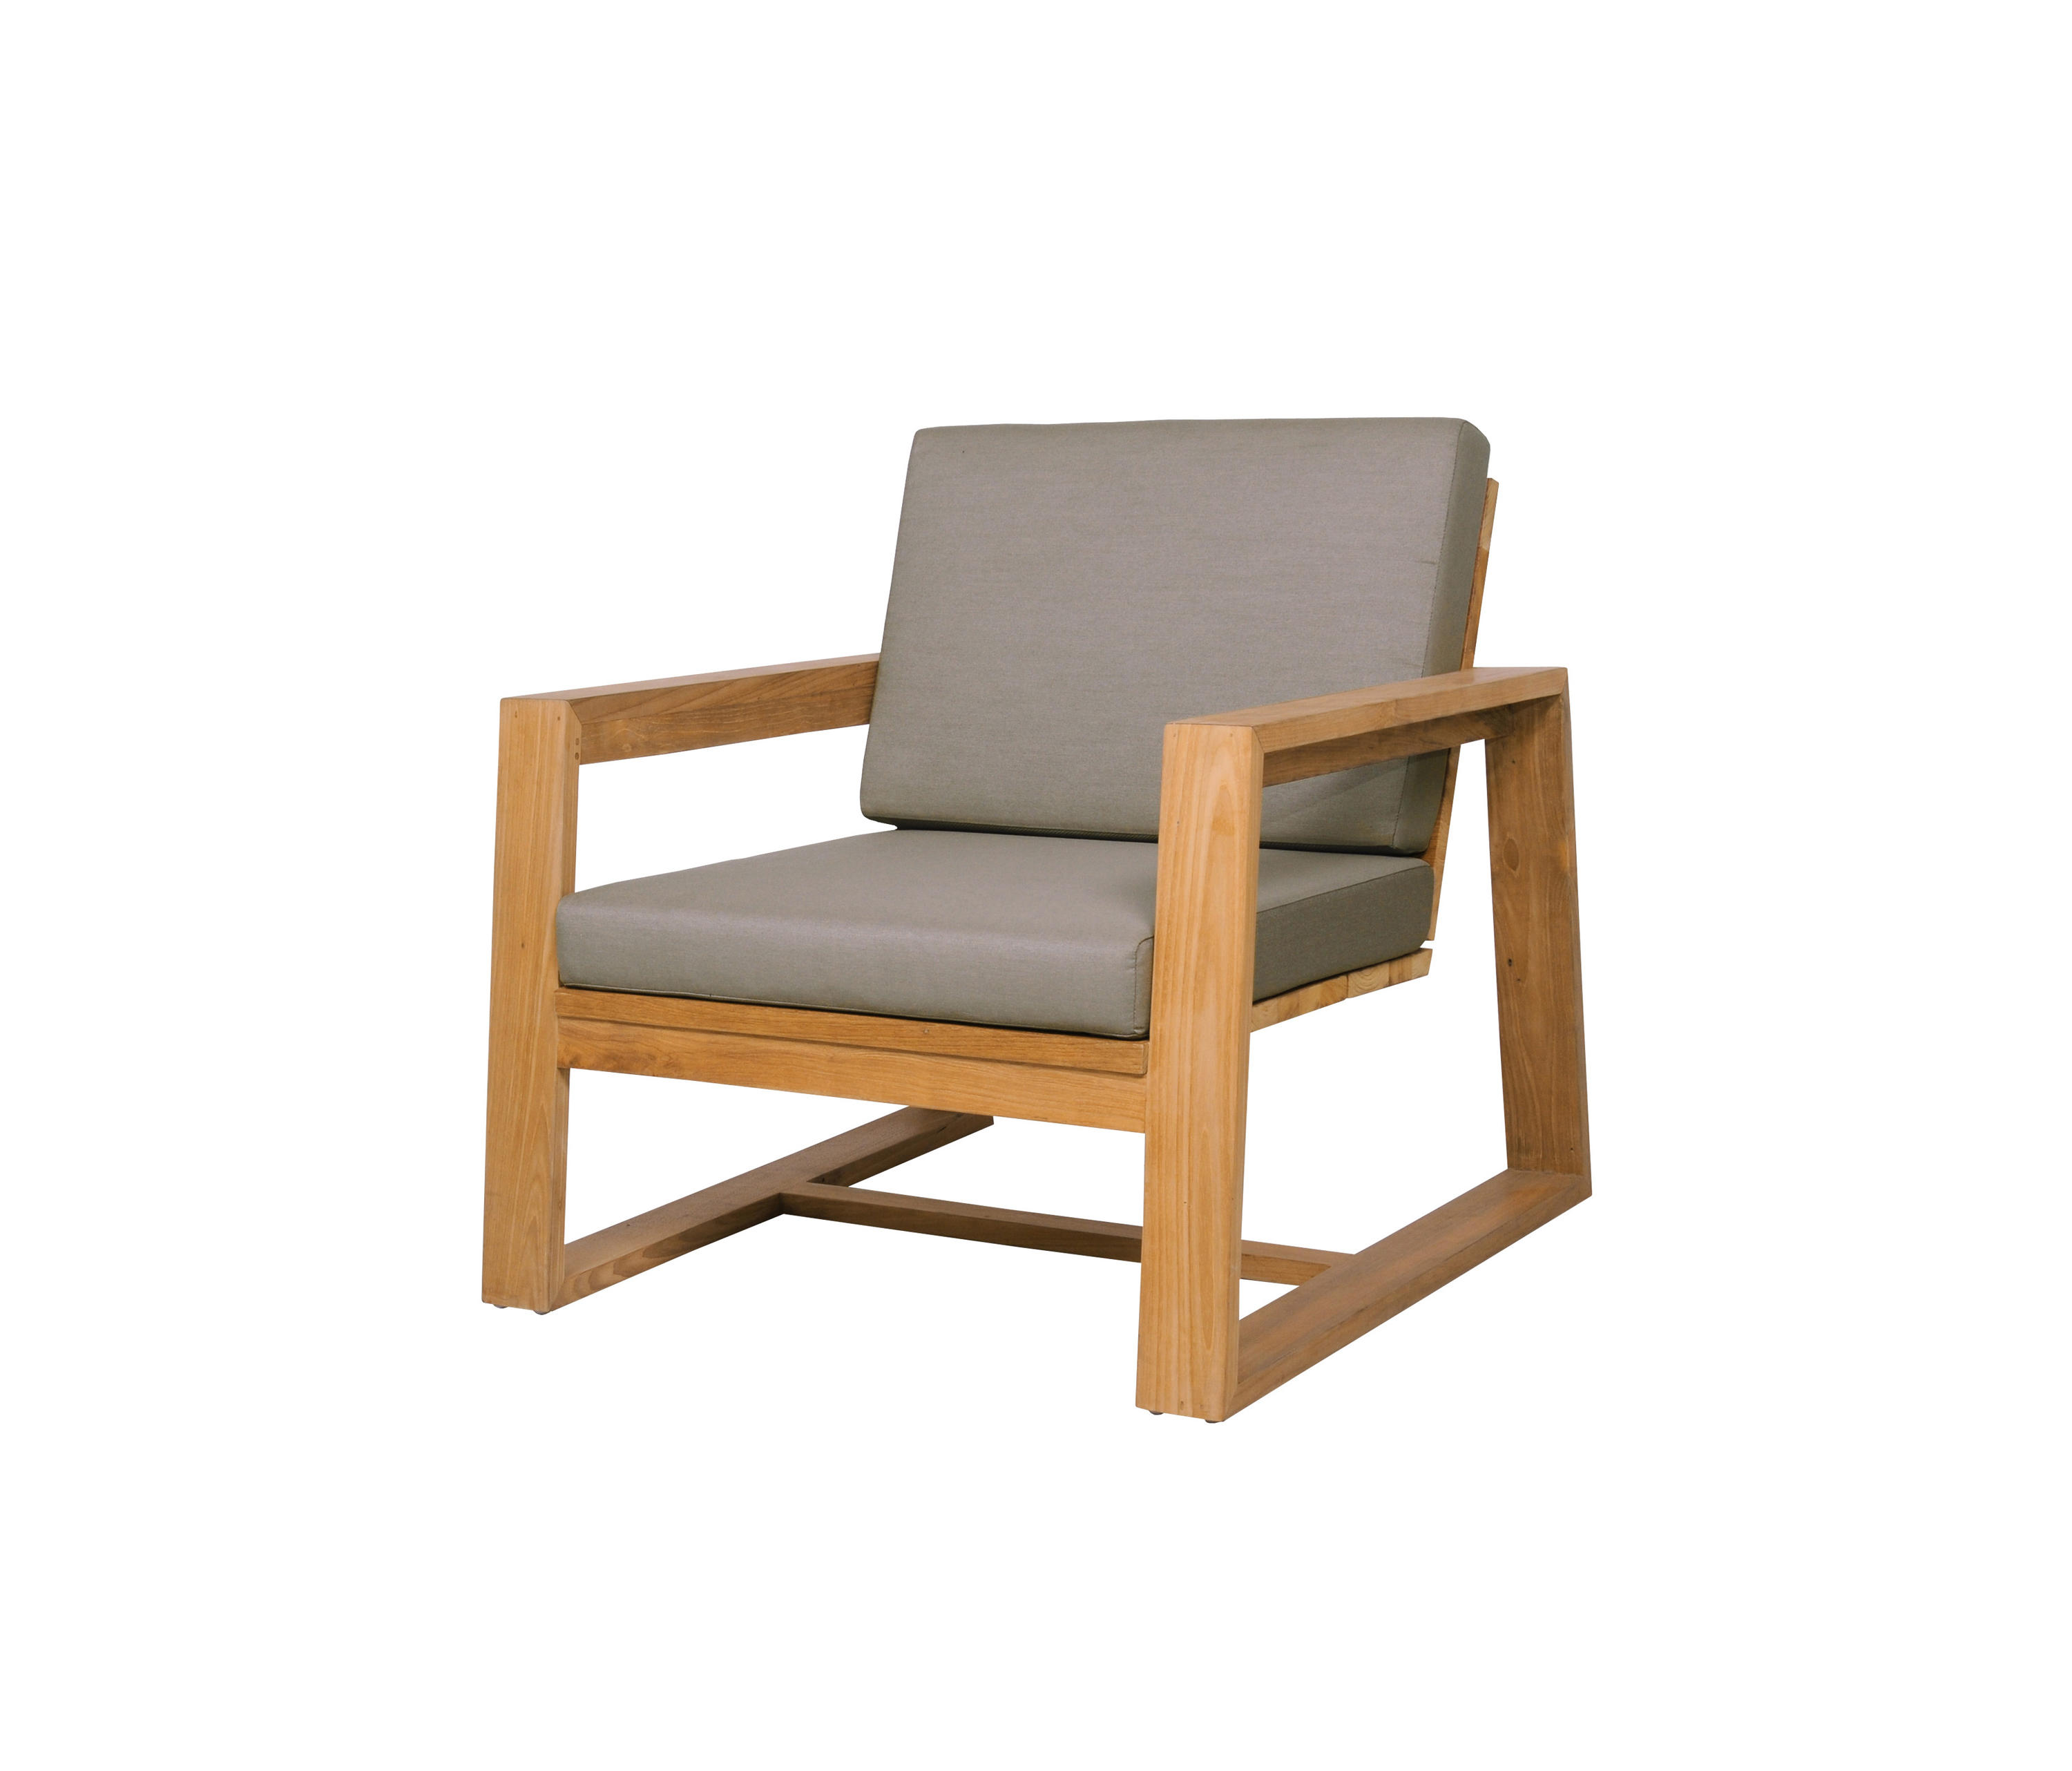 Sessel Avalon Avalon Lounge 1 Seater Sessel Von Mamagreen Architonic